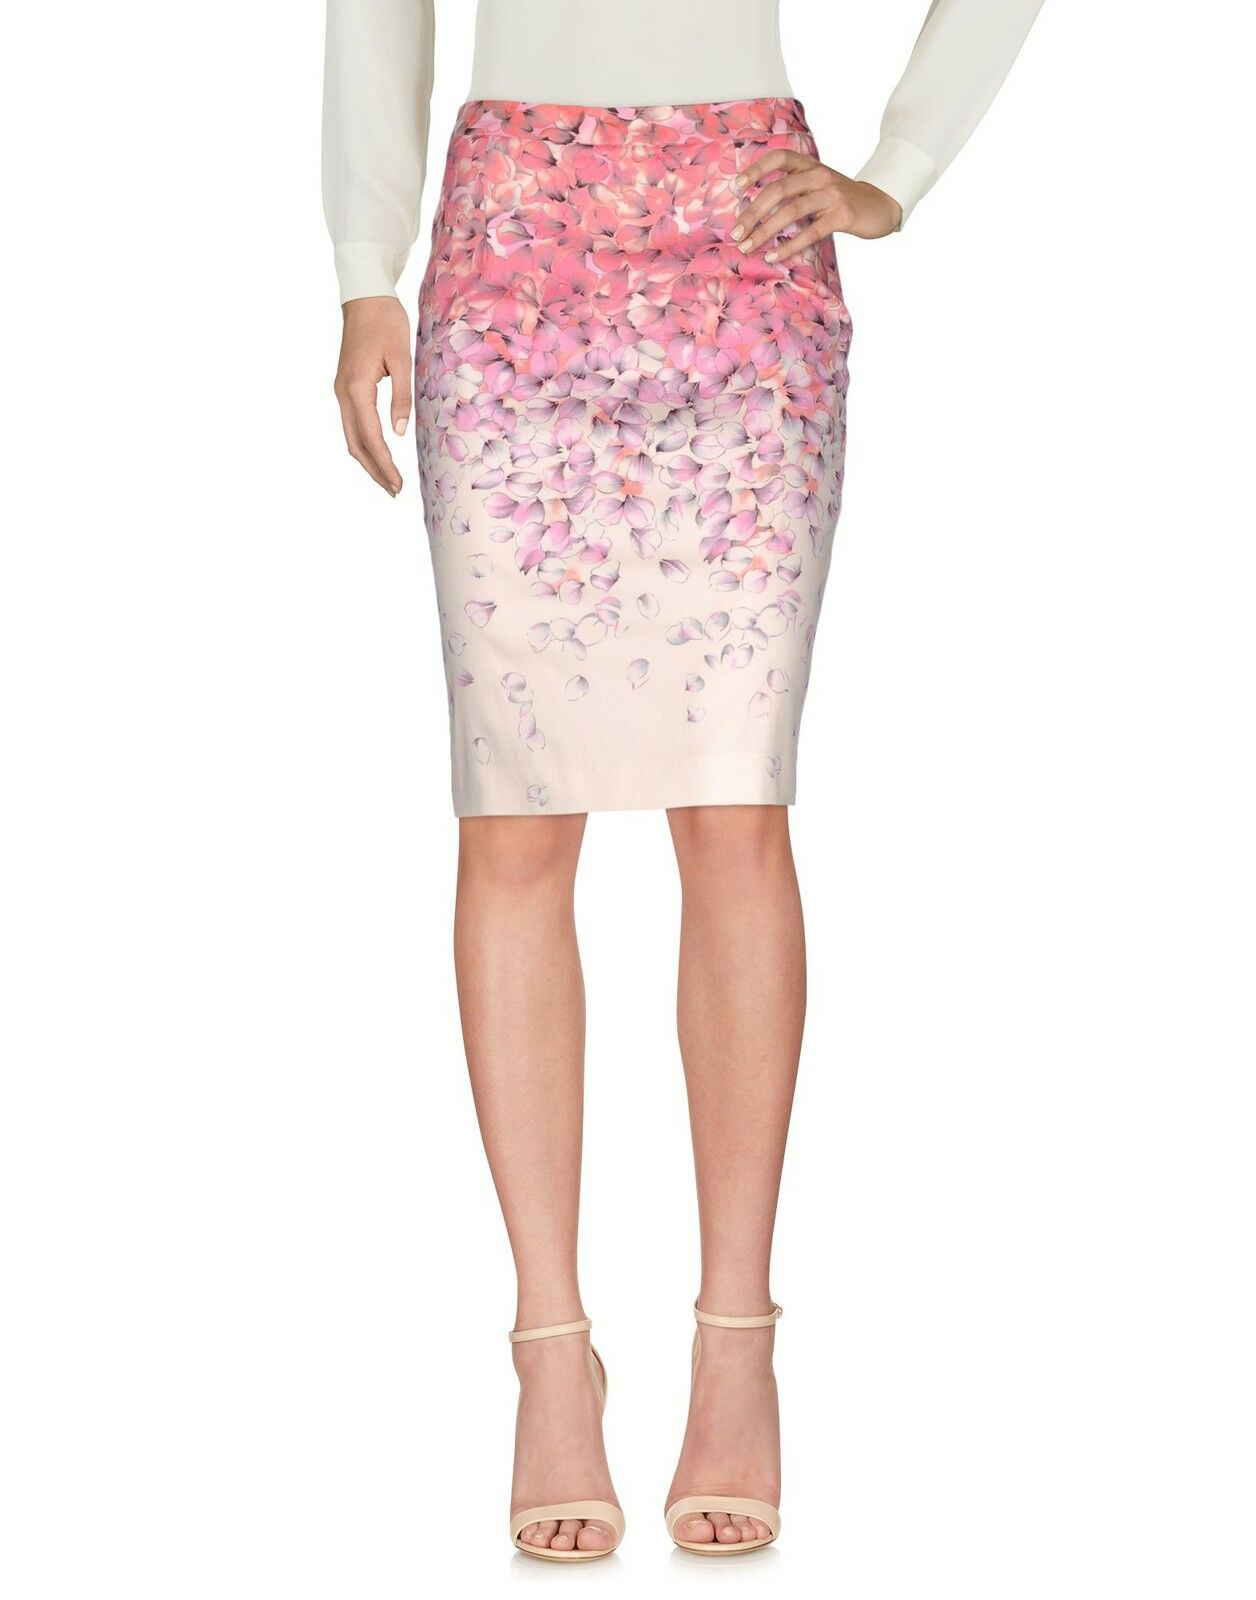 Brand new blueMARINE Pencil Skirt -Pink Floral Pattern - Italian 46  US 12